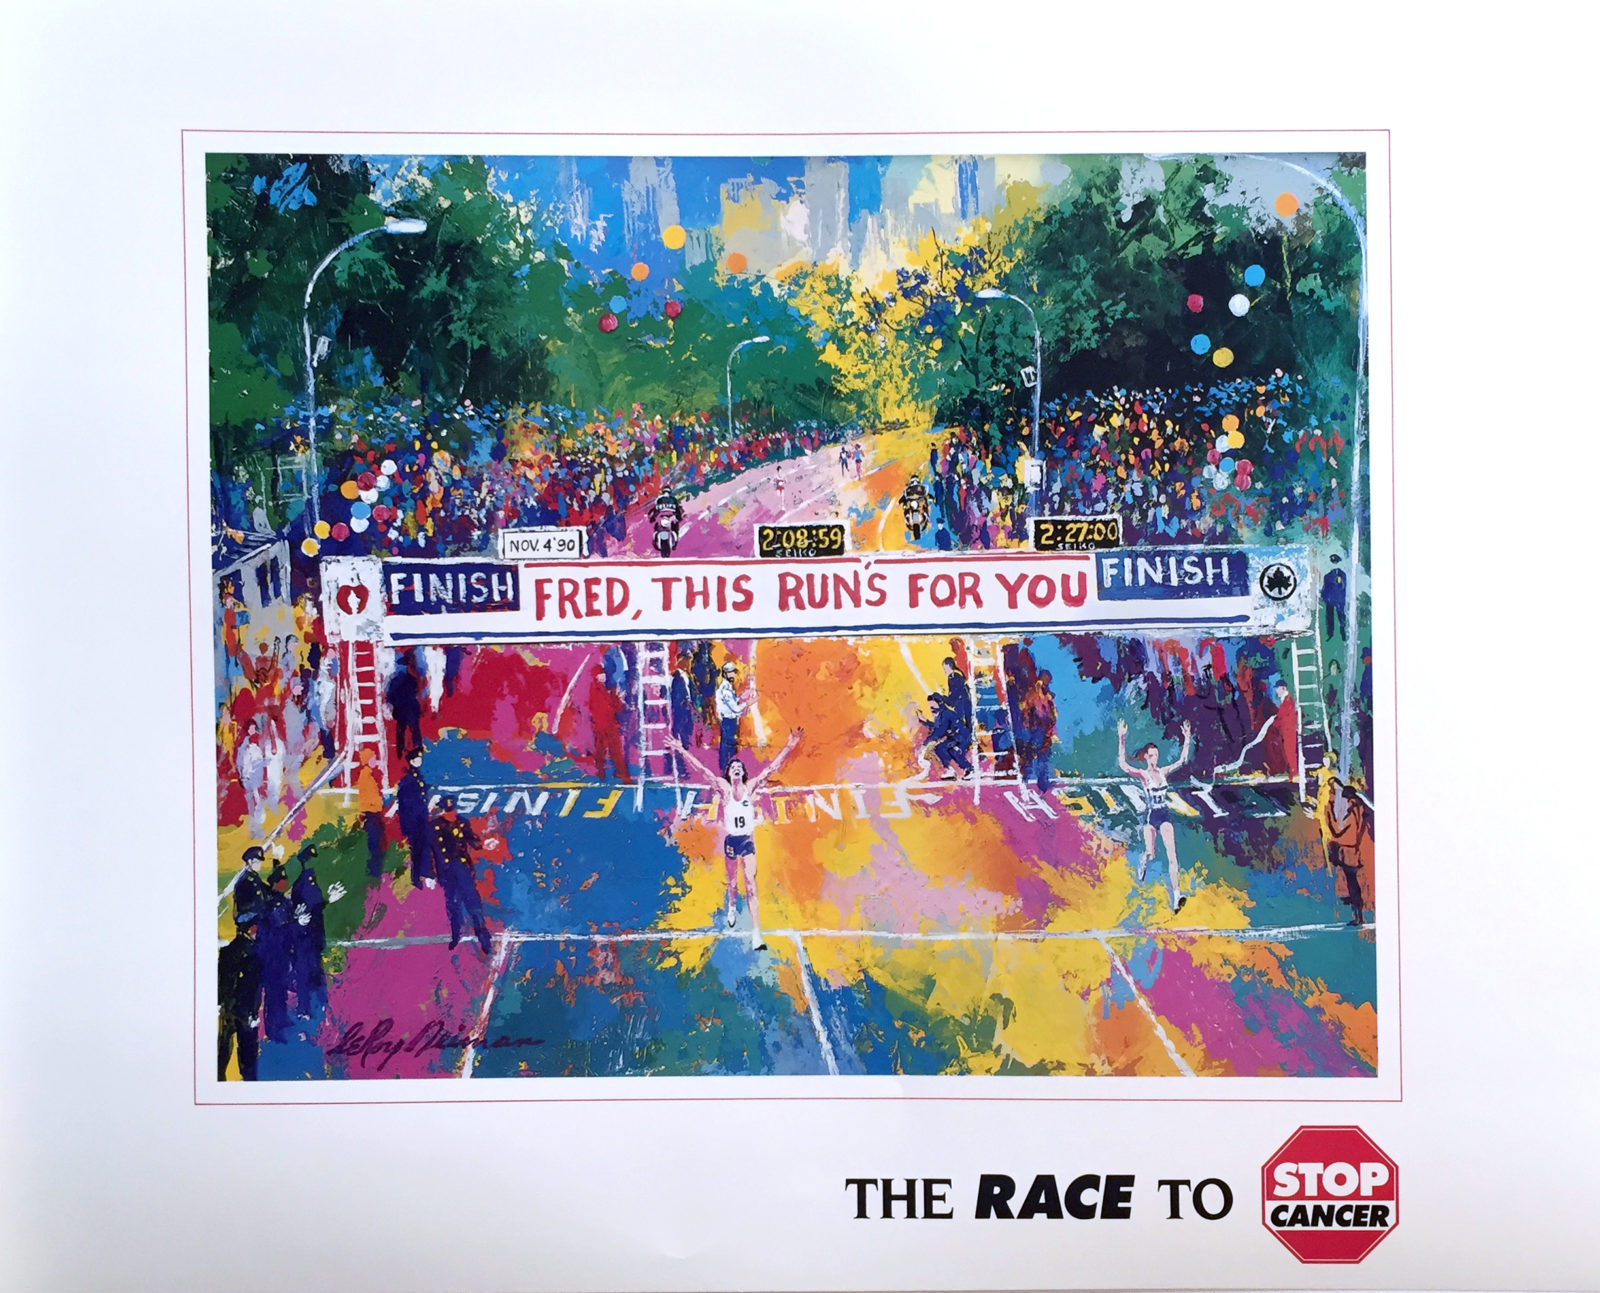 Fred, This Run's for You Marathon Race poster